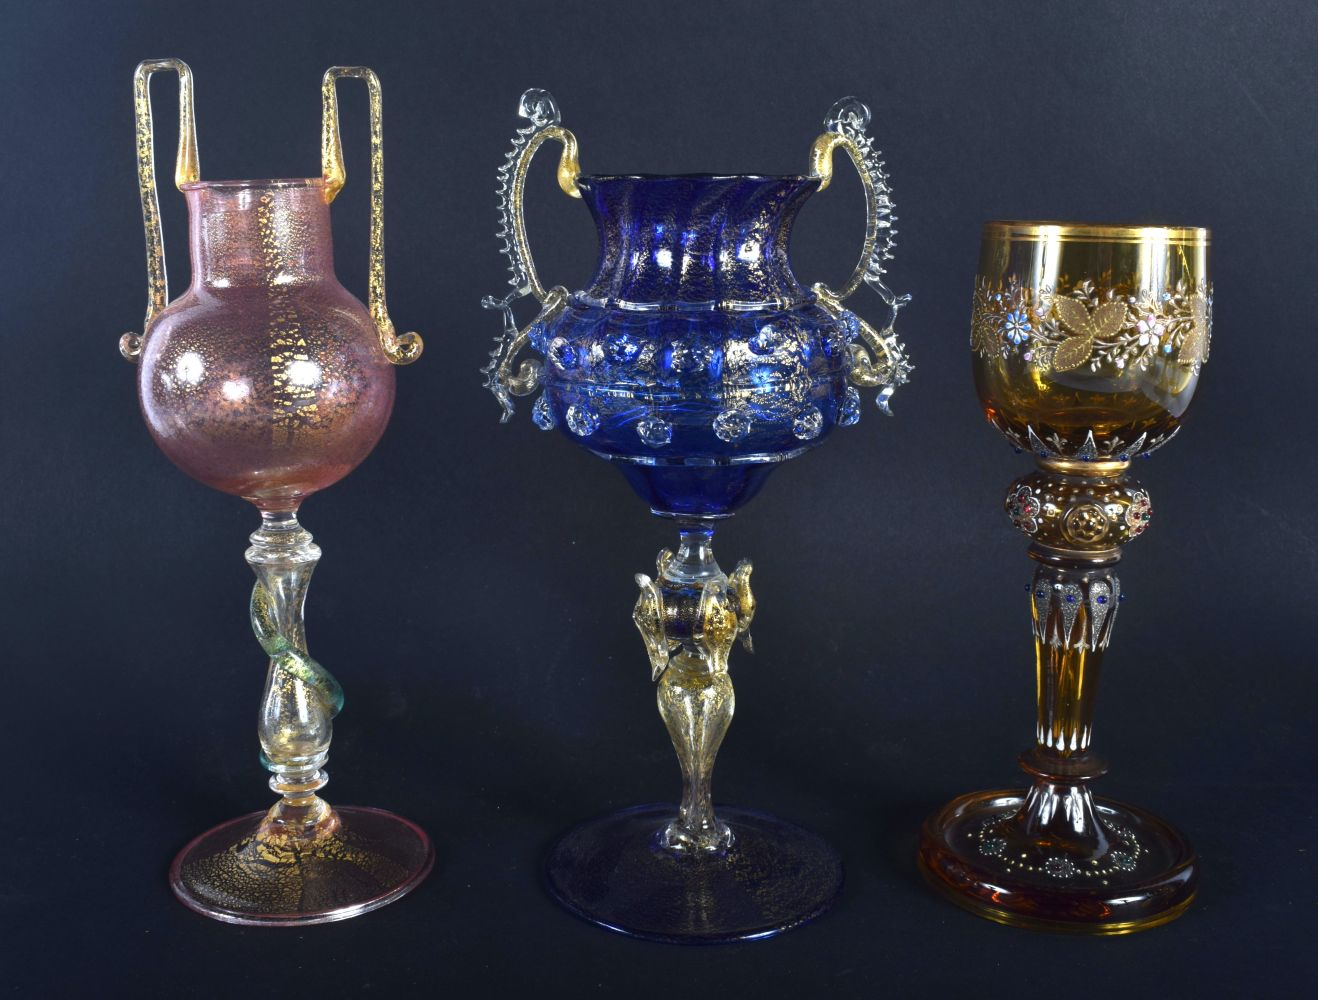 TWO VENETIAN GLASSES together with a Lobmeyr type glass. Largest 21 cm high. (3) - Image 2 of 2